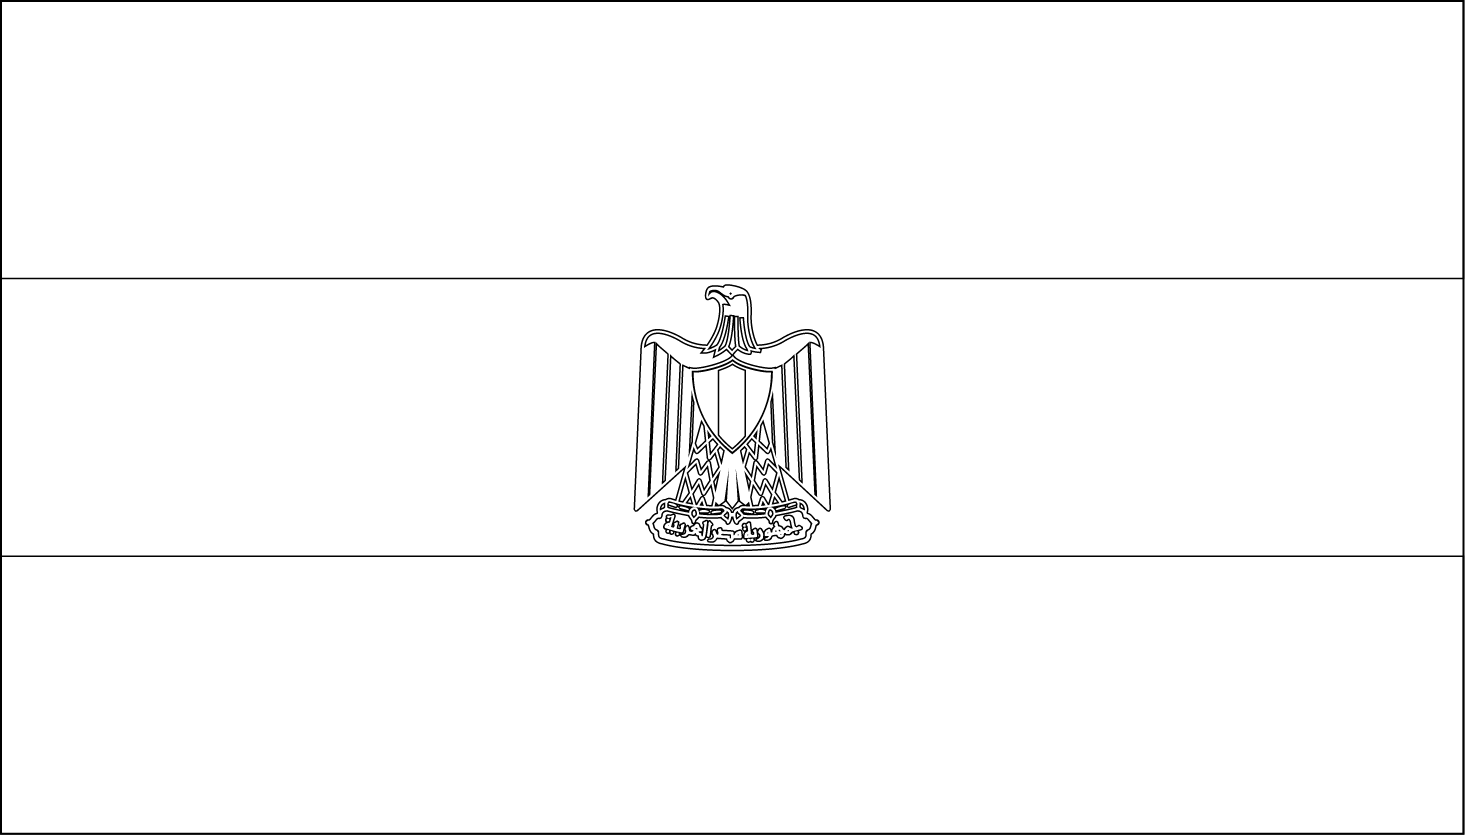 egyptian flag coloring pages - photo#11